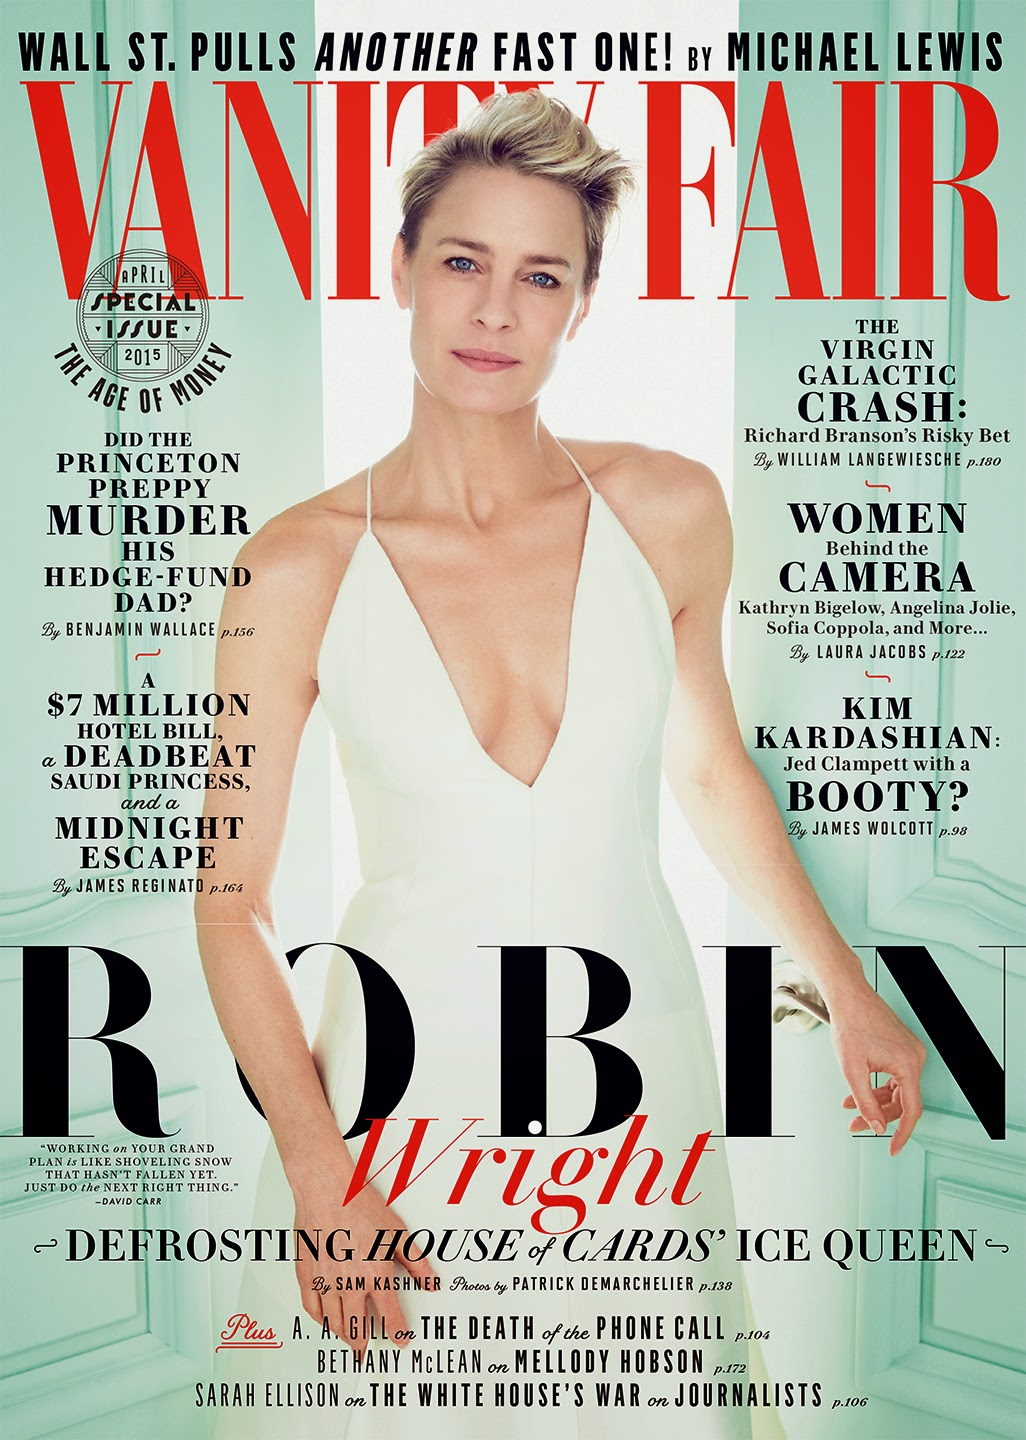 Actress @ Robin Wright by Patrick Demarchelier for Vanity Fair April 2015